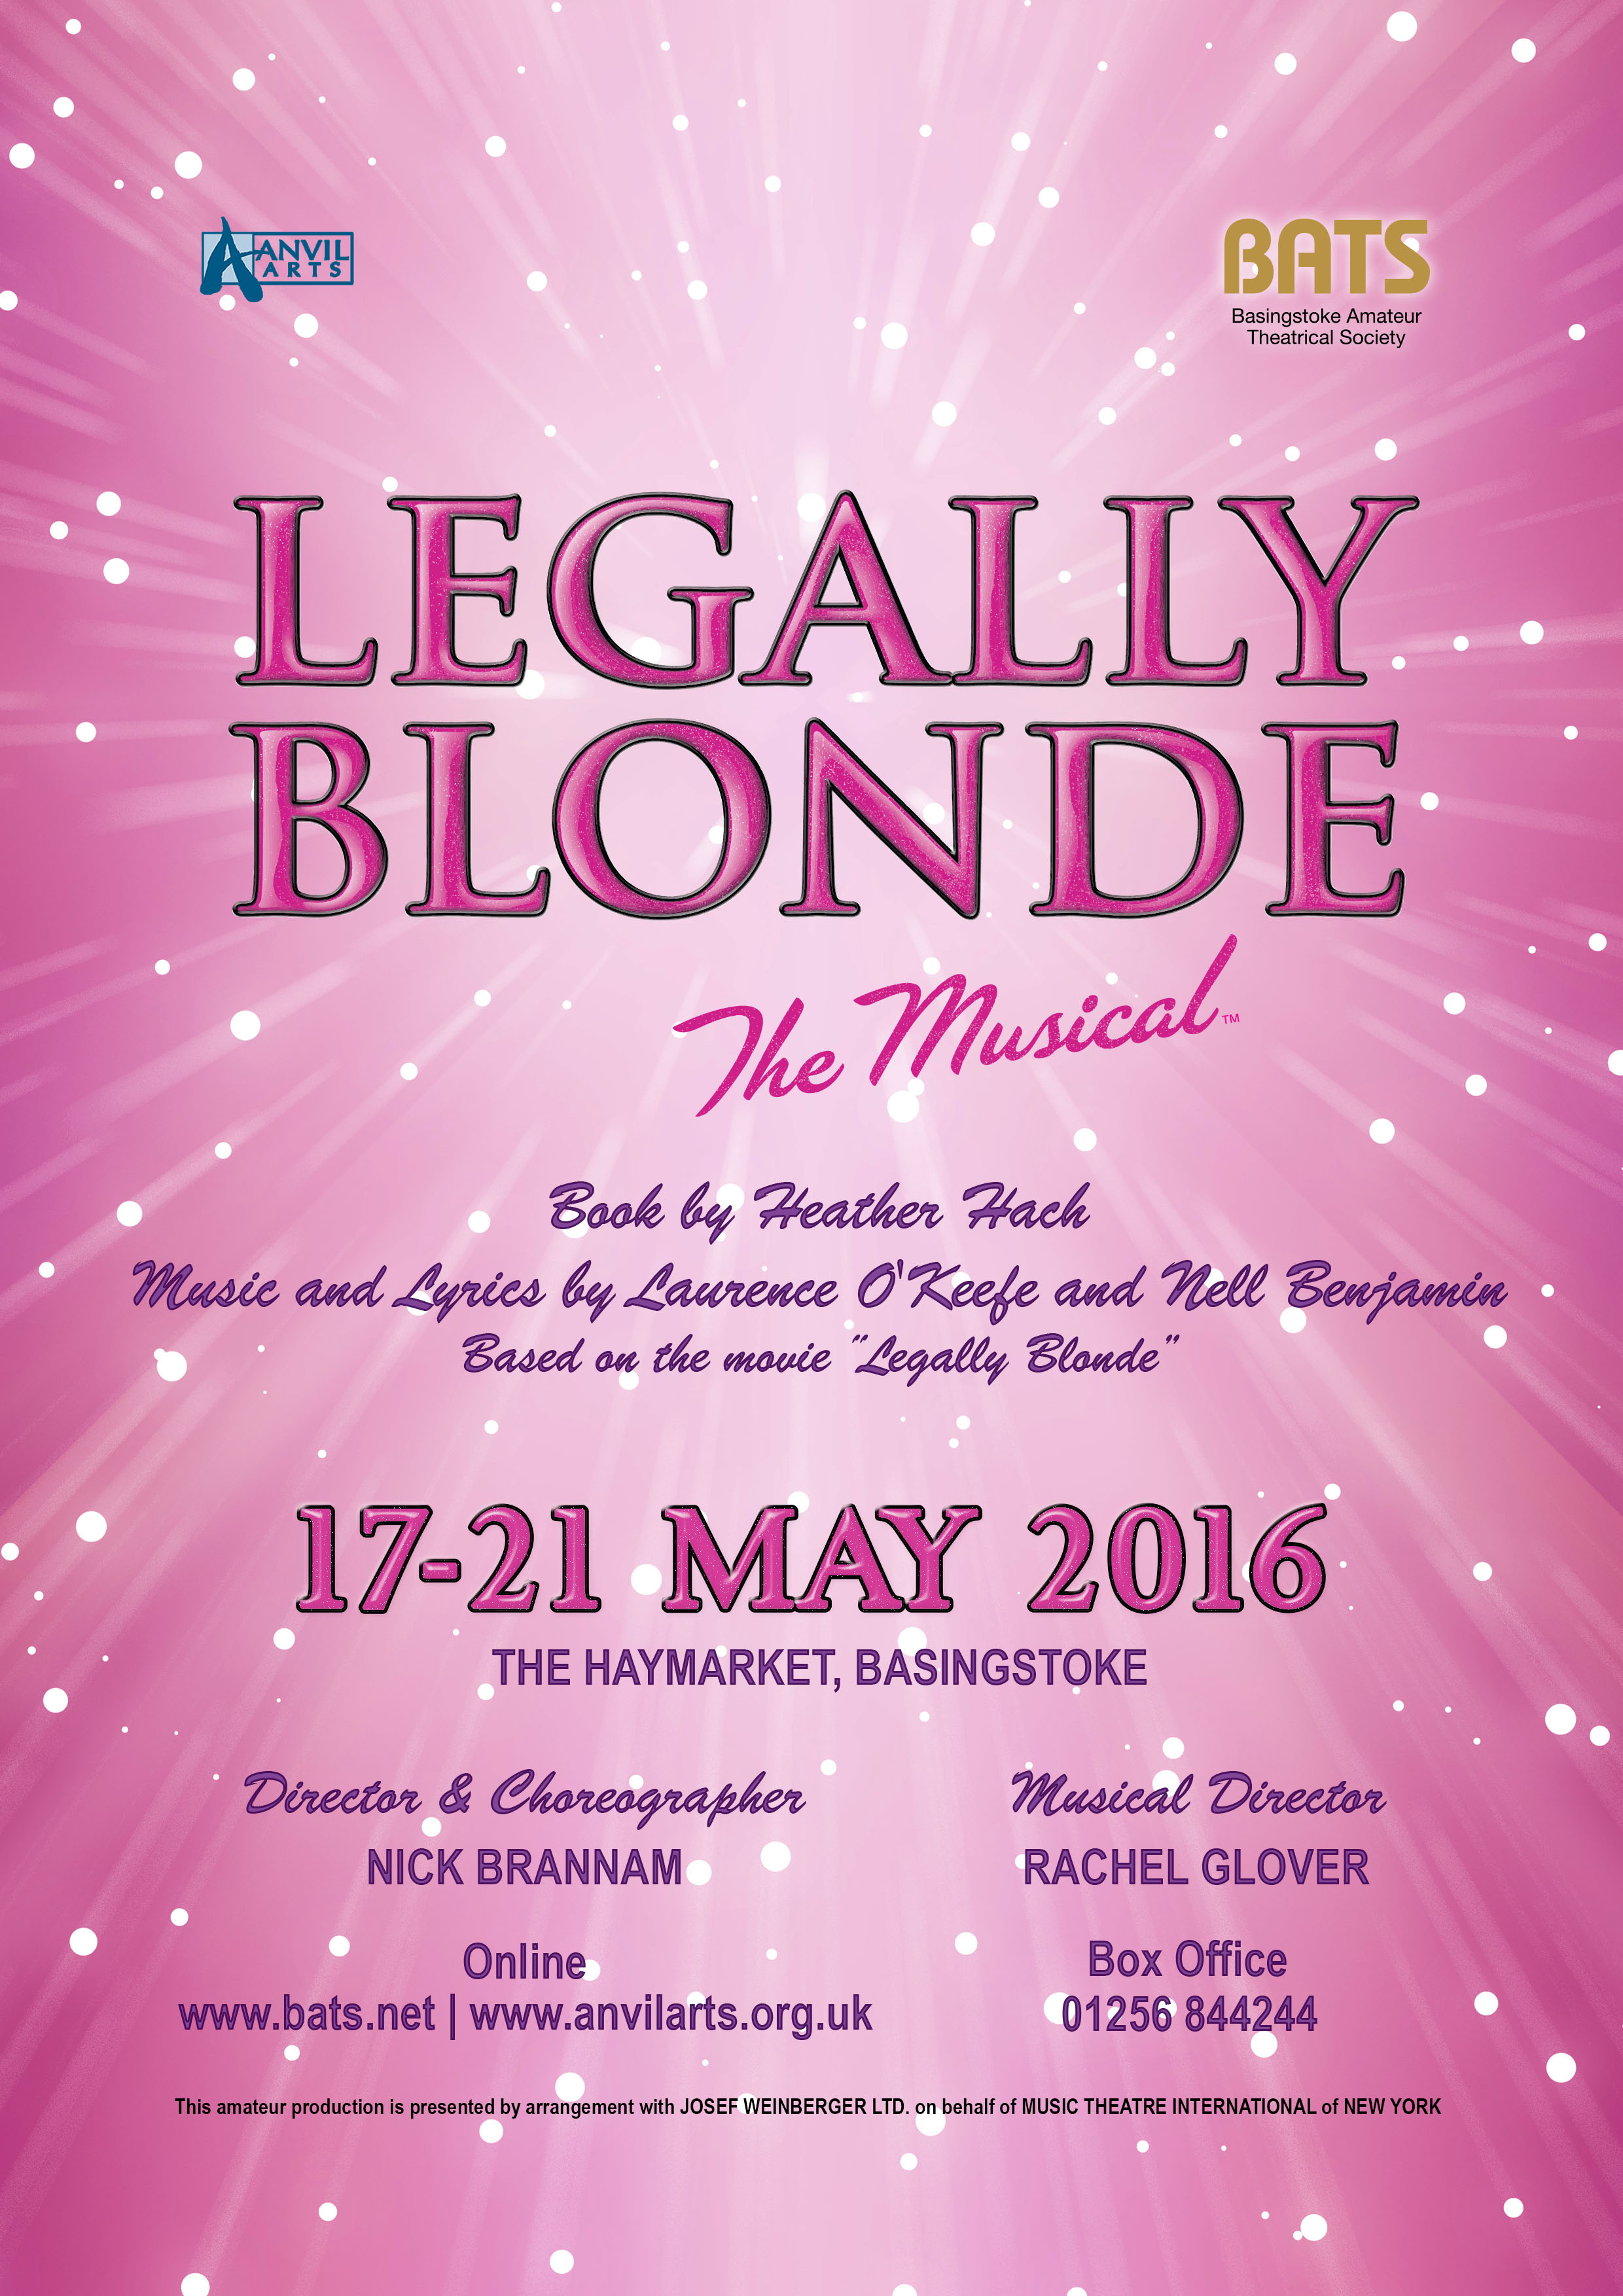 BATS Legally Blonde Poster image